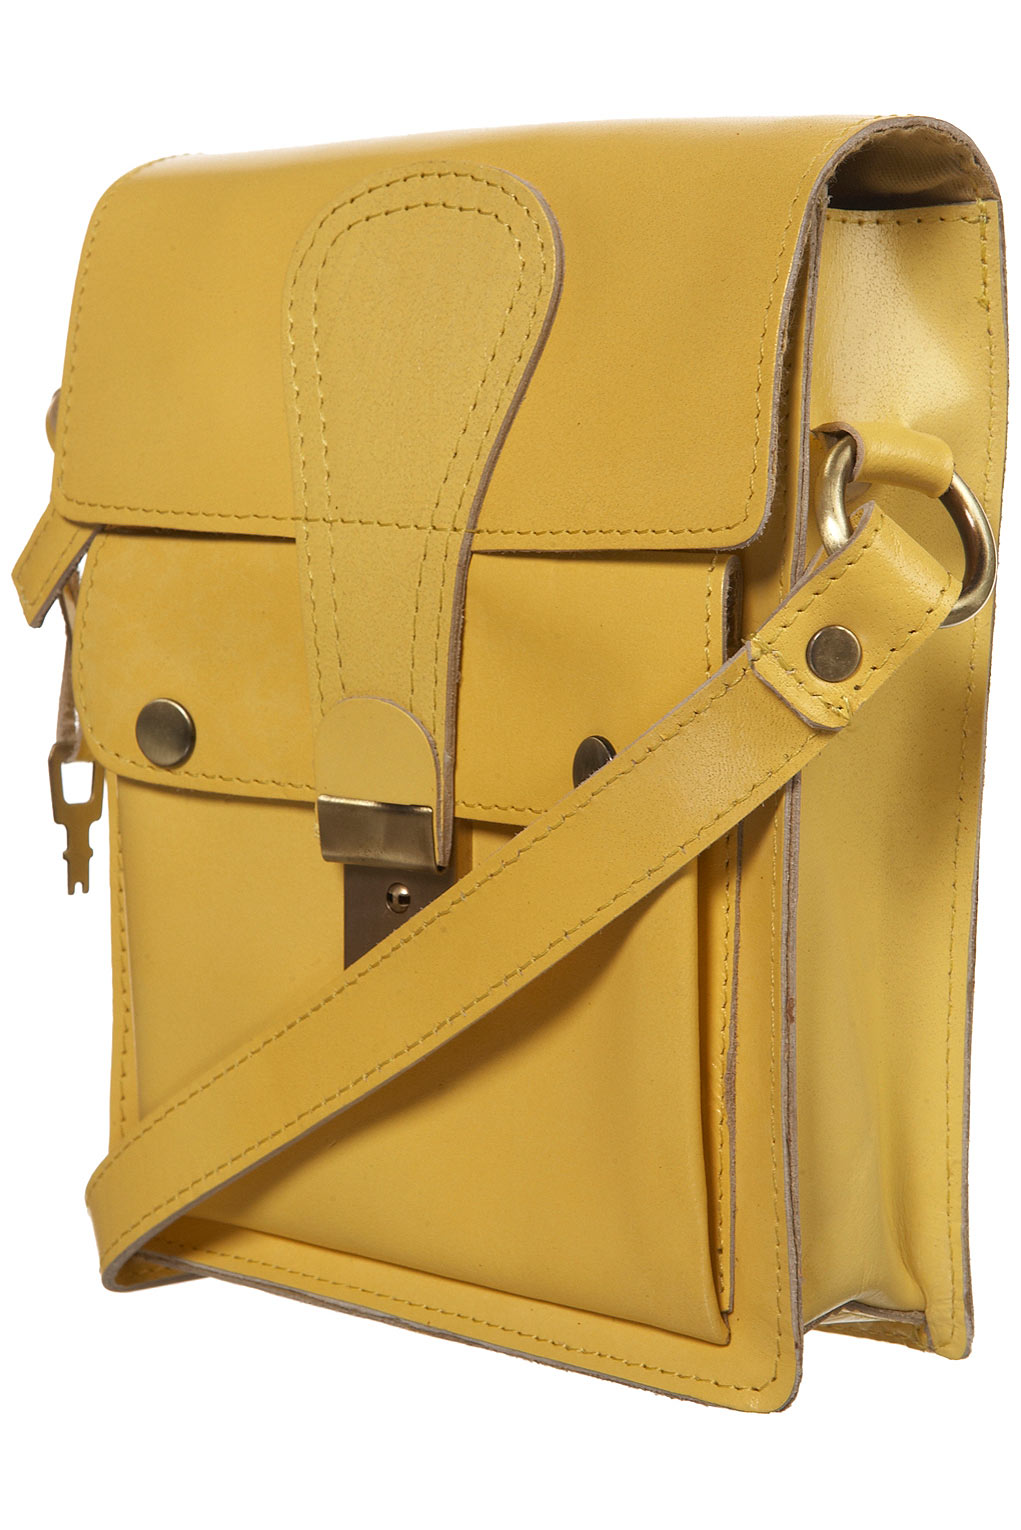 Deal of the day: Topshop yellow vintage look leather satchel